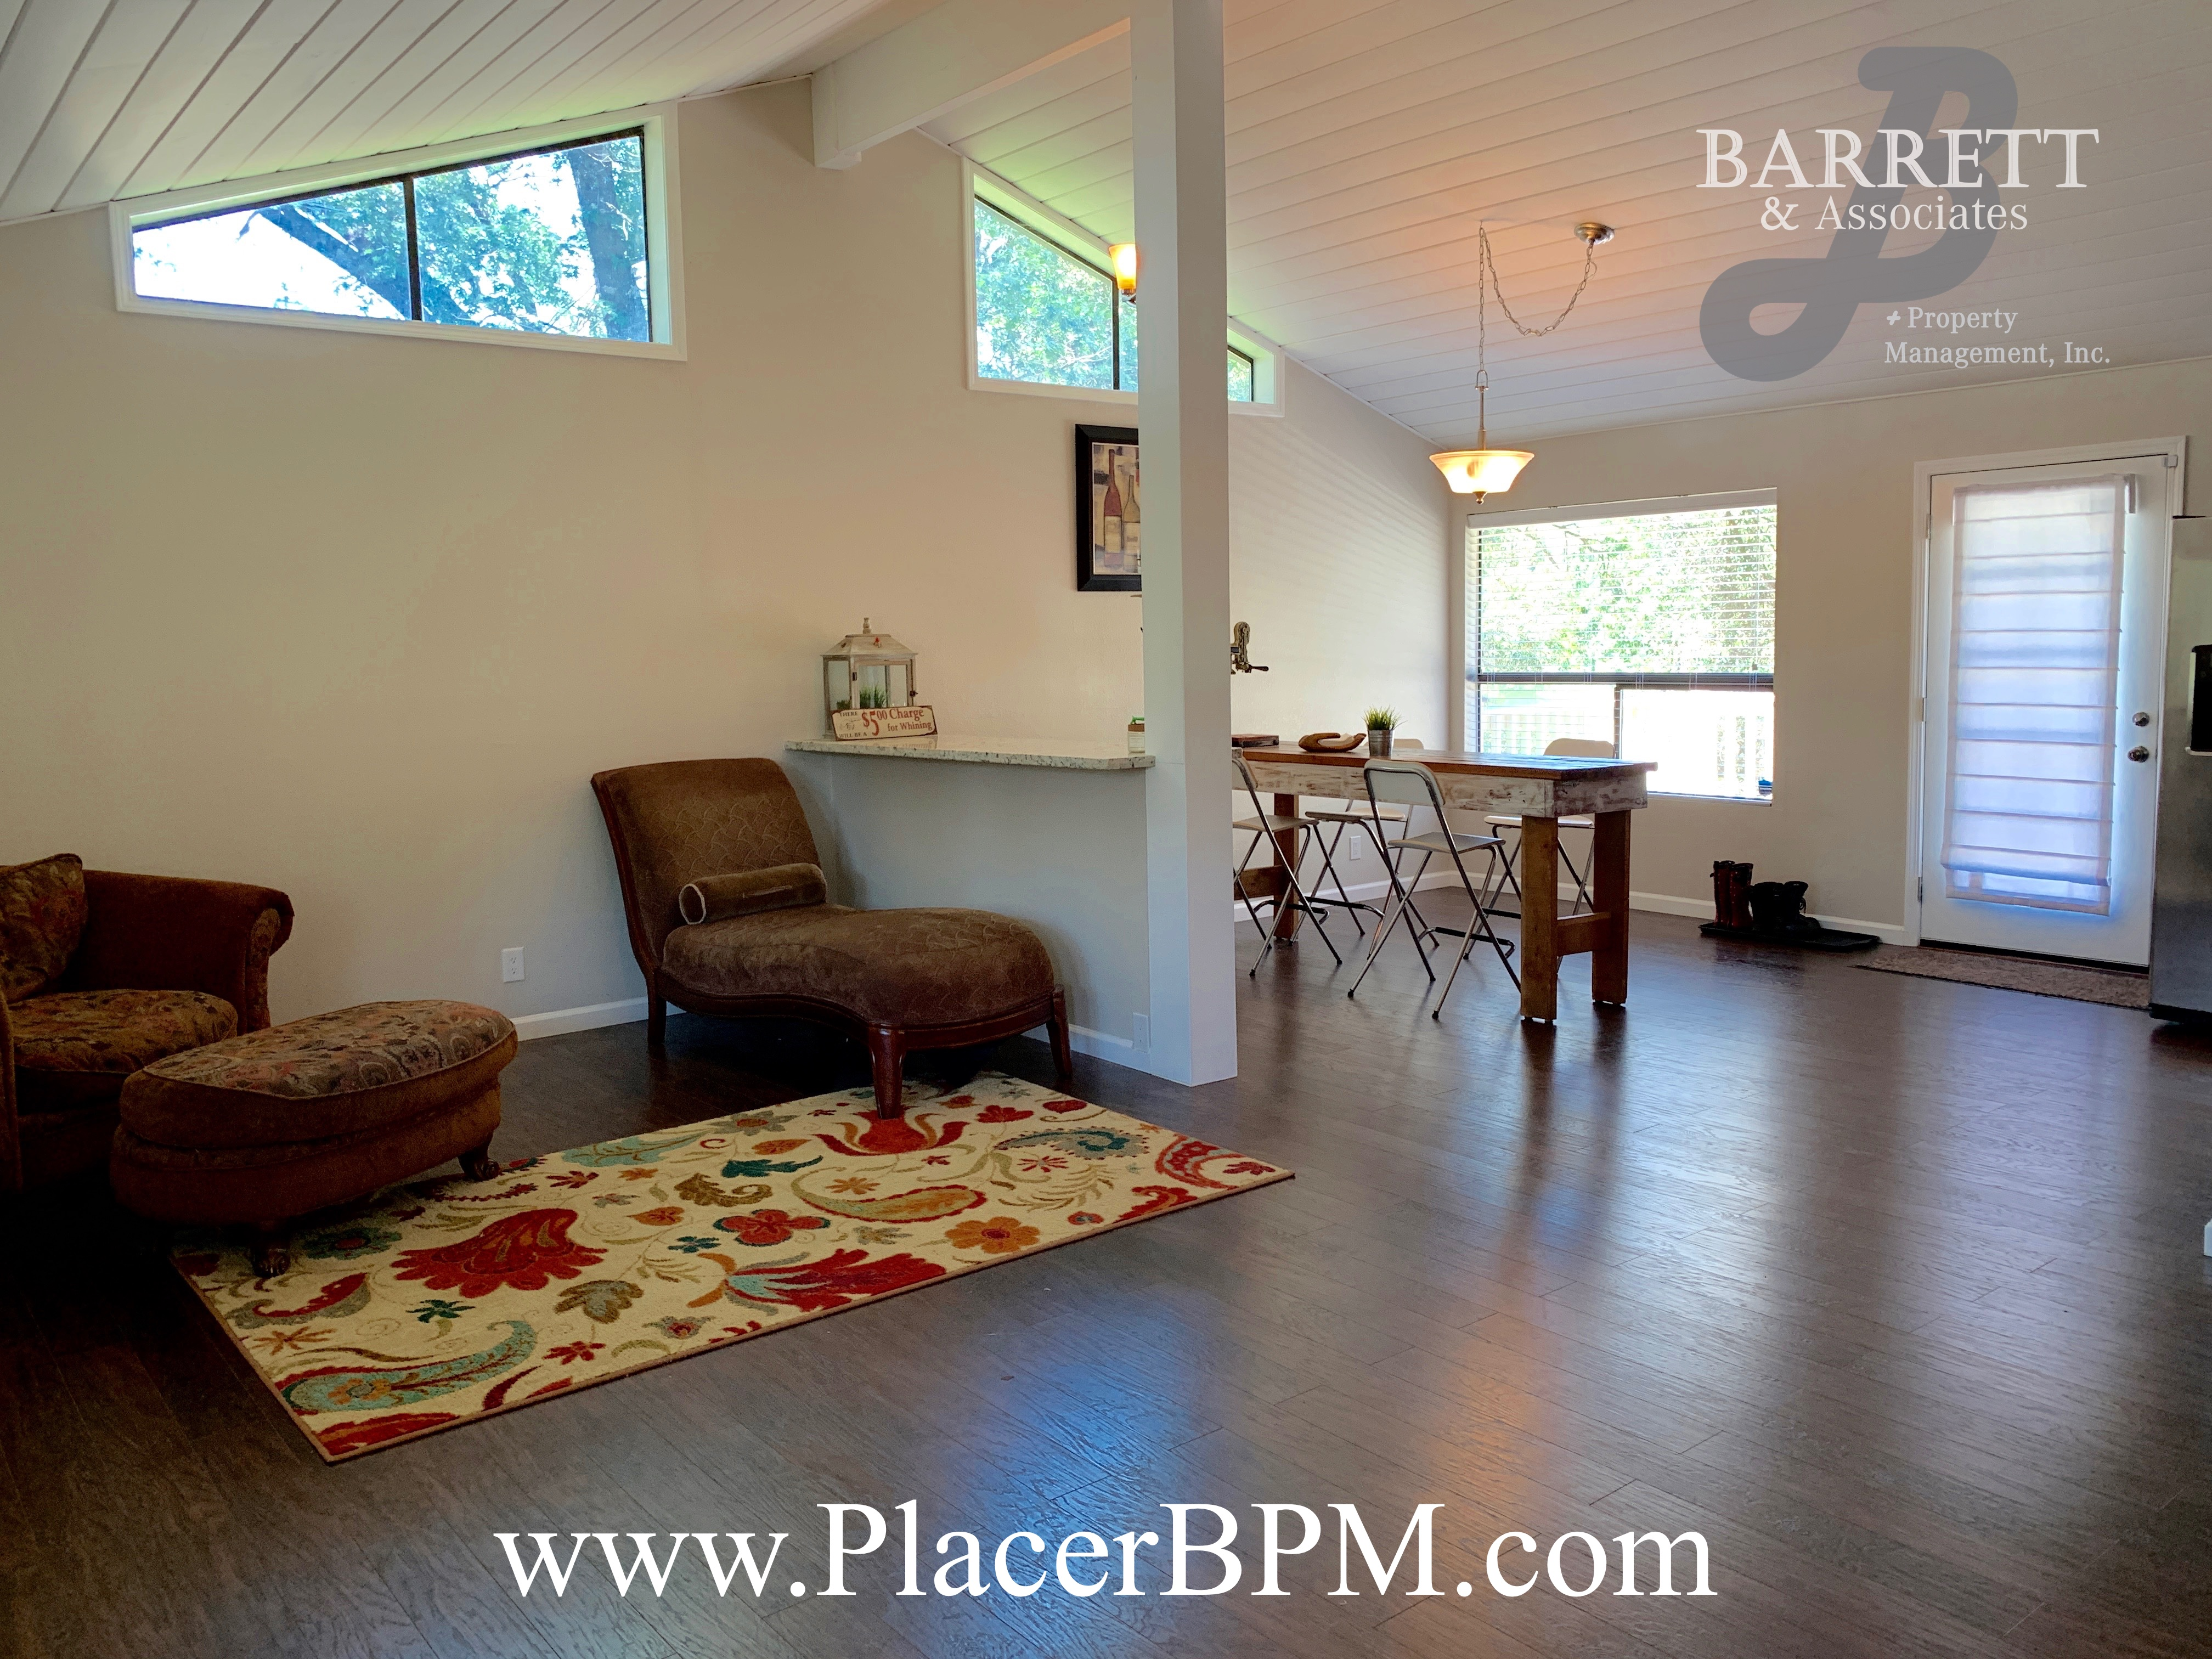 For Rent Grass Valley Hwy Auburn Ca 95602 Barrett Real Estate